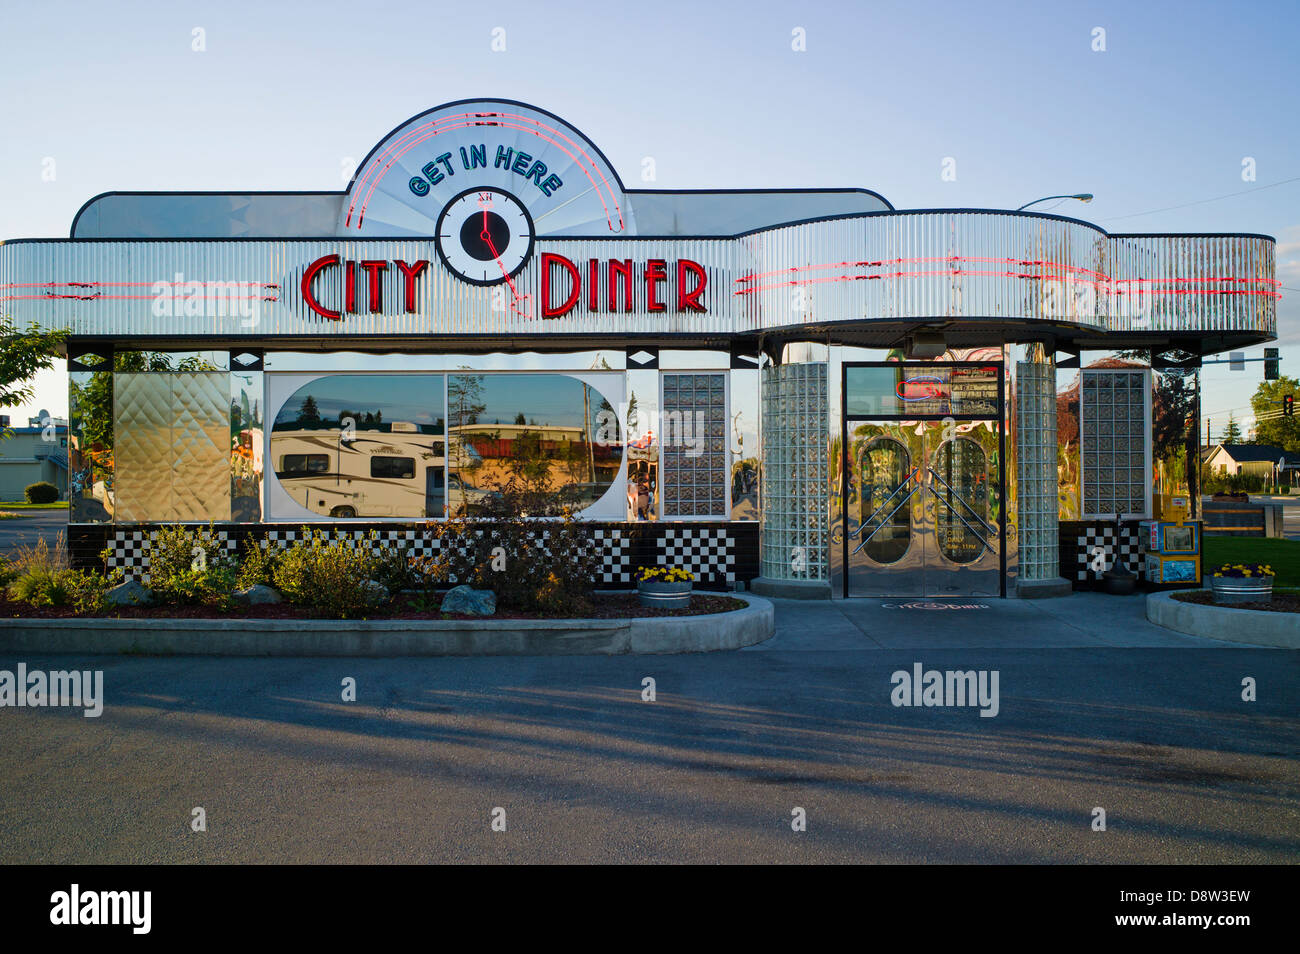 exterior view of retro design stainless steel city diner